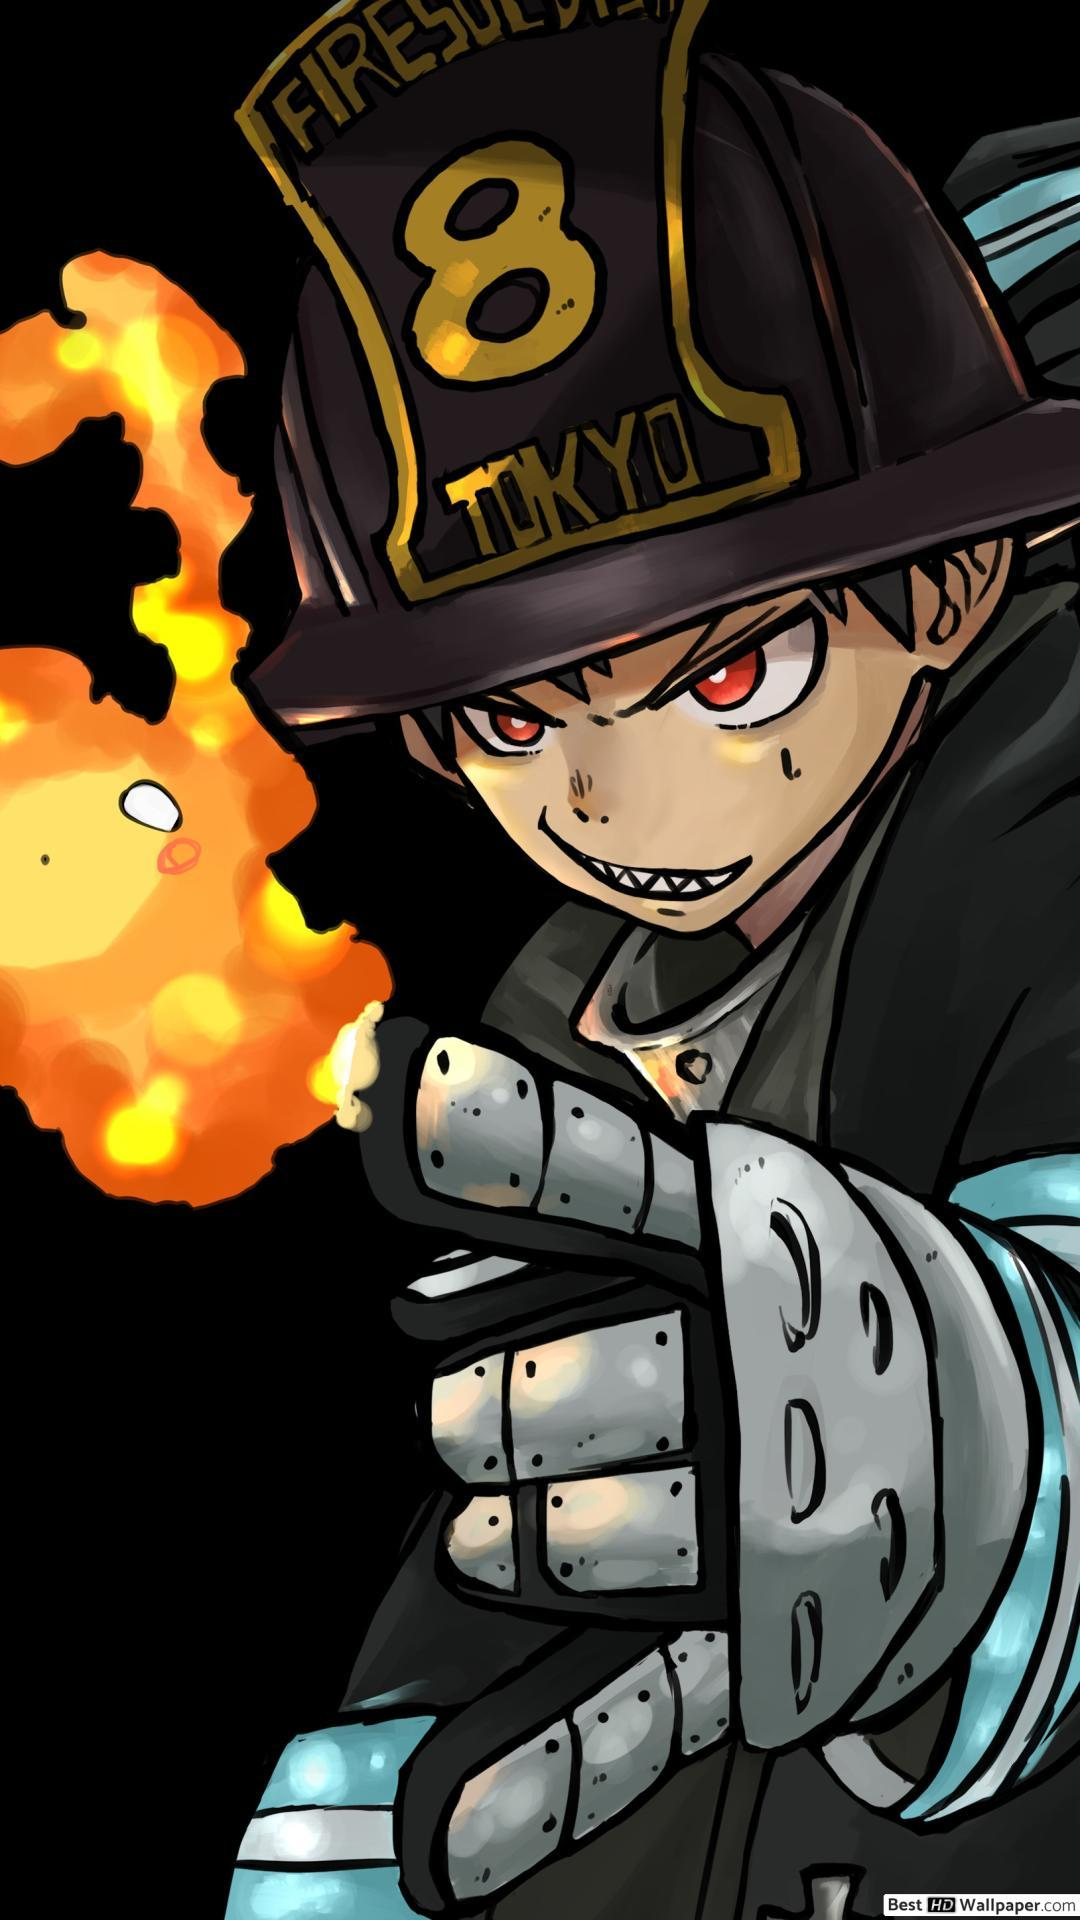 Fire Force Anime Iphone Wallpapers Wallpaper Cave View and download this 1280x720 enen no shouboutai (fire force) wallpaper with 6 favorites, or browse the gallery. fire force anime iphone wallpapers